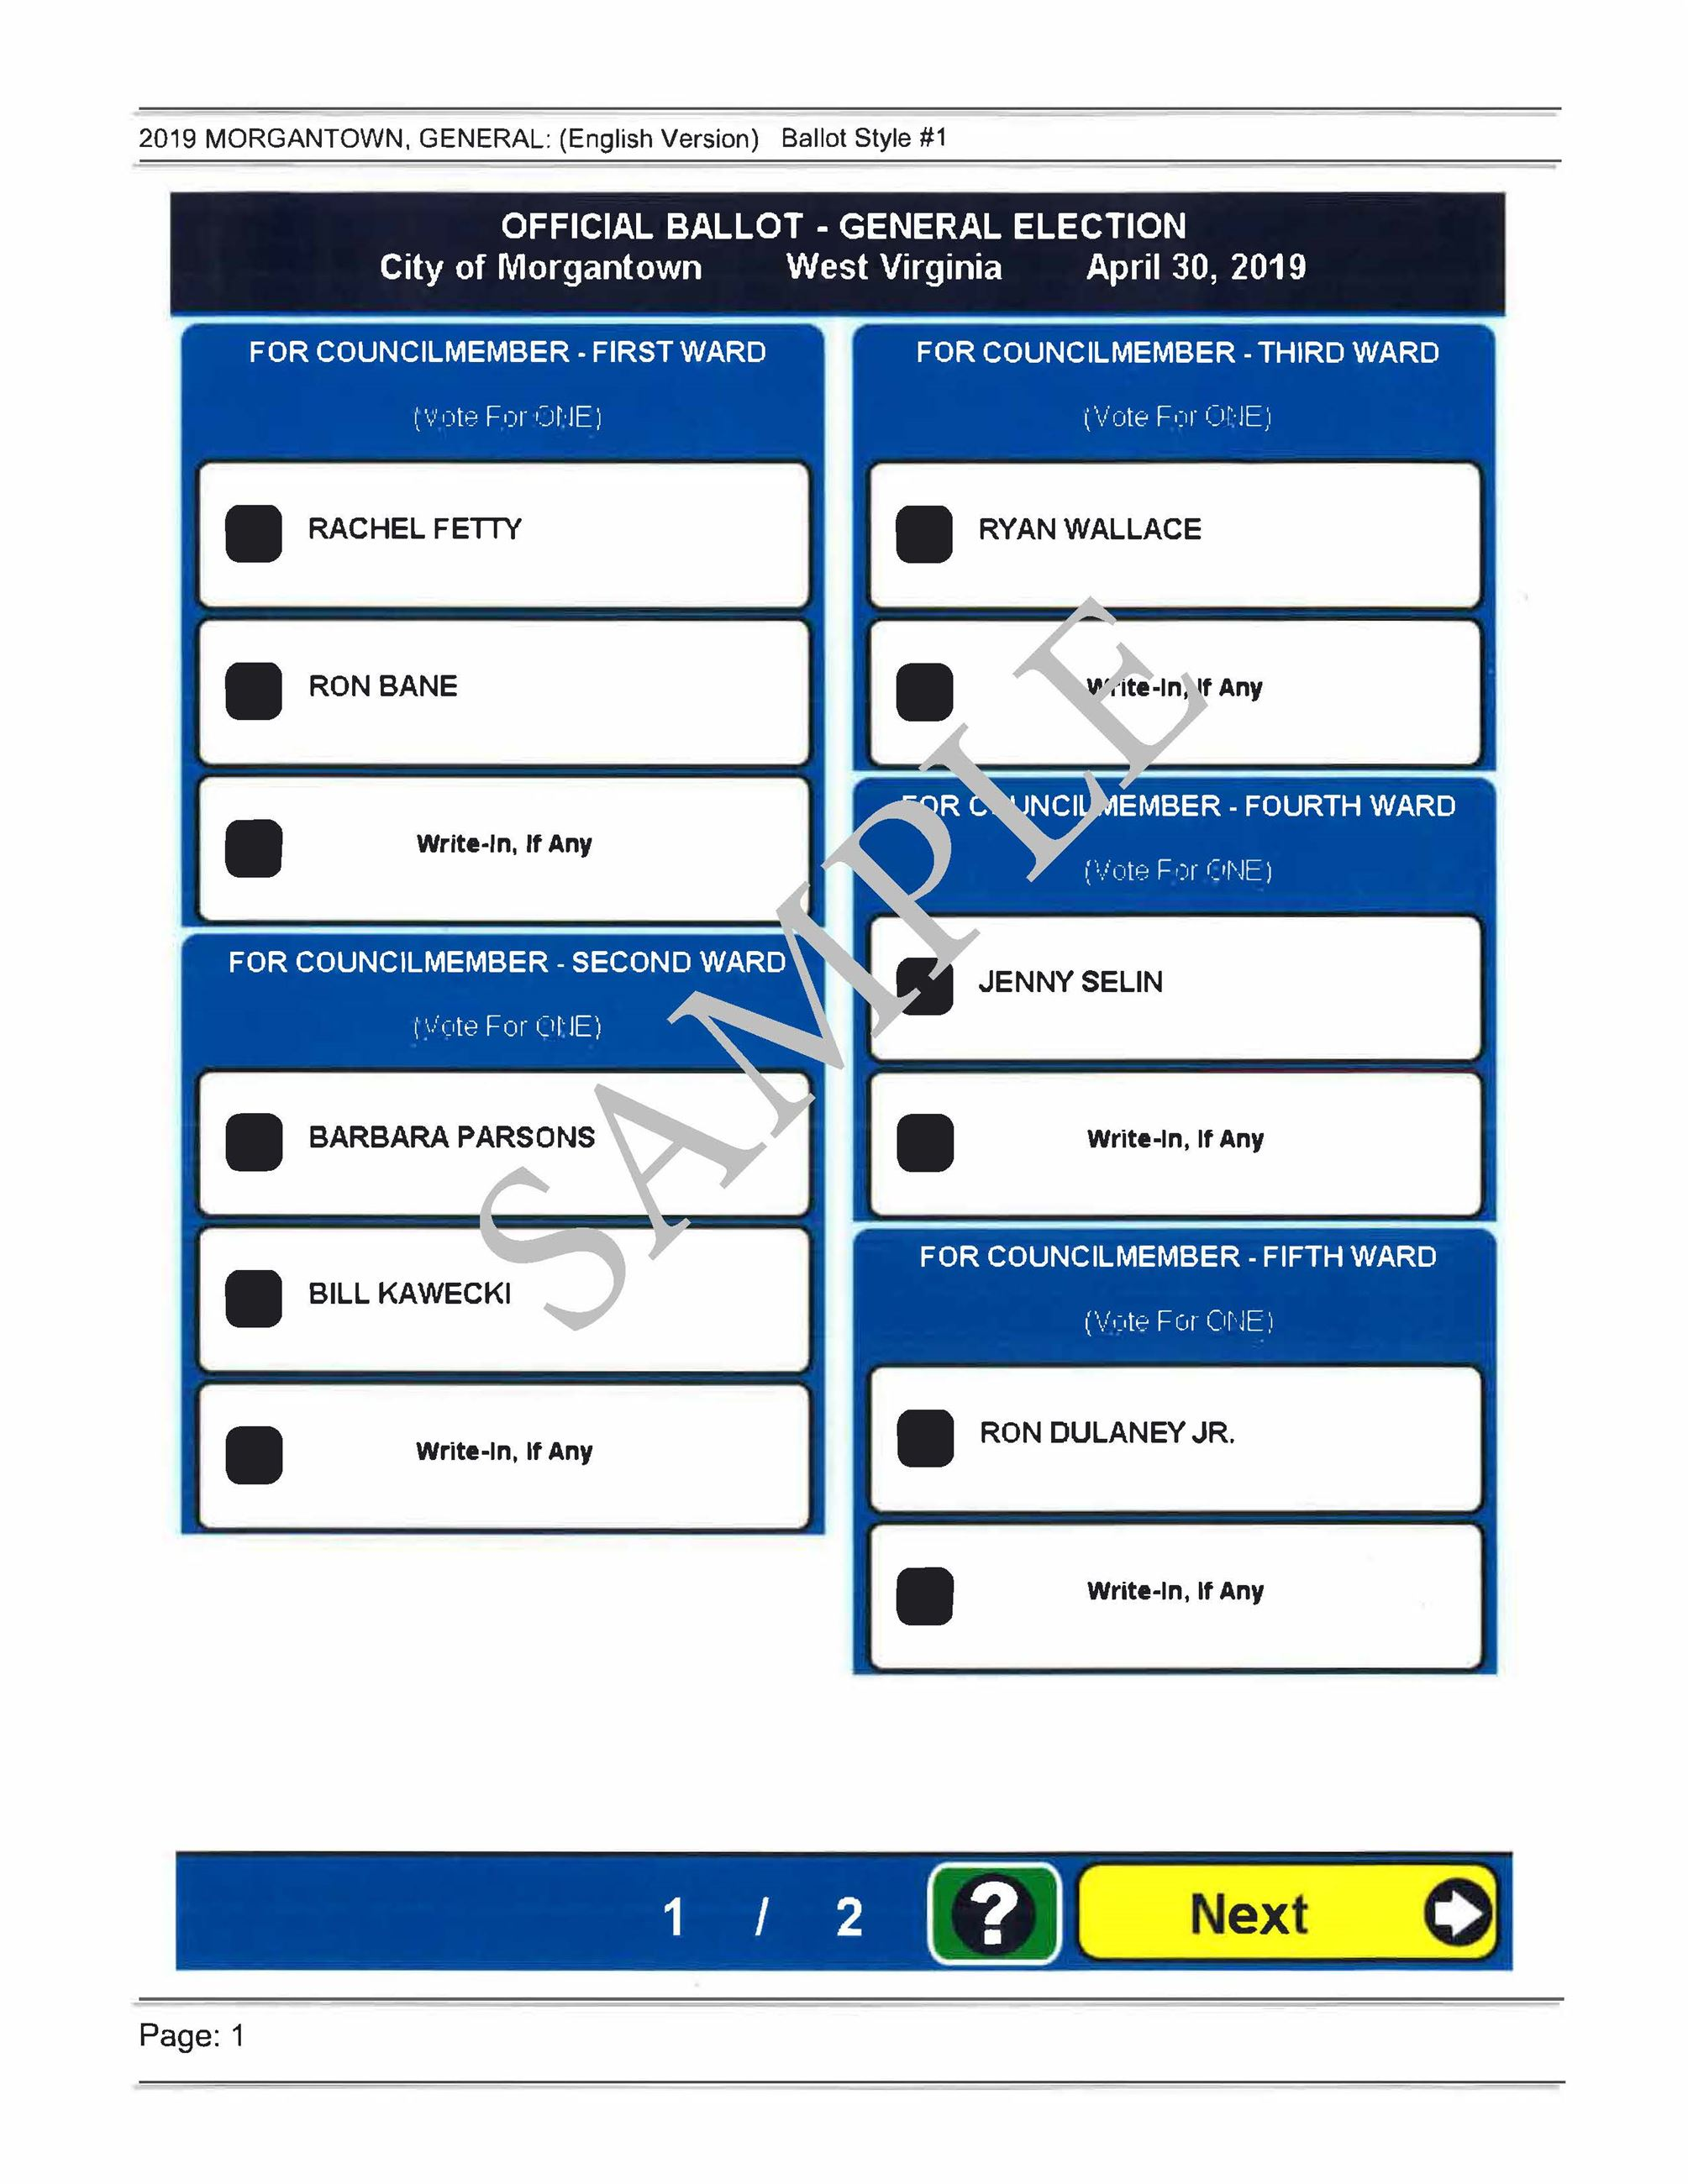 2019 City of Morgantown Municipal Election Sample Ballot Page 1.